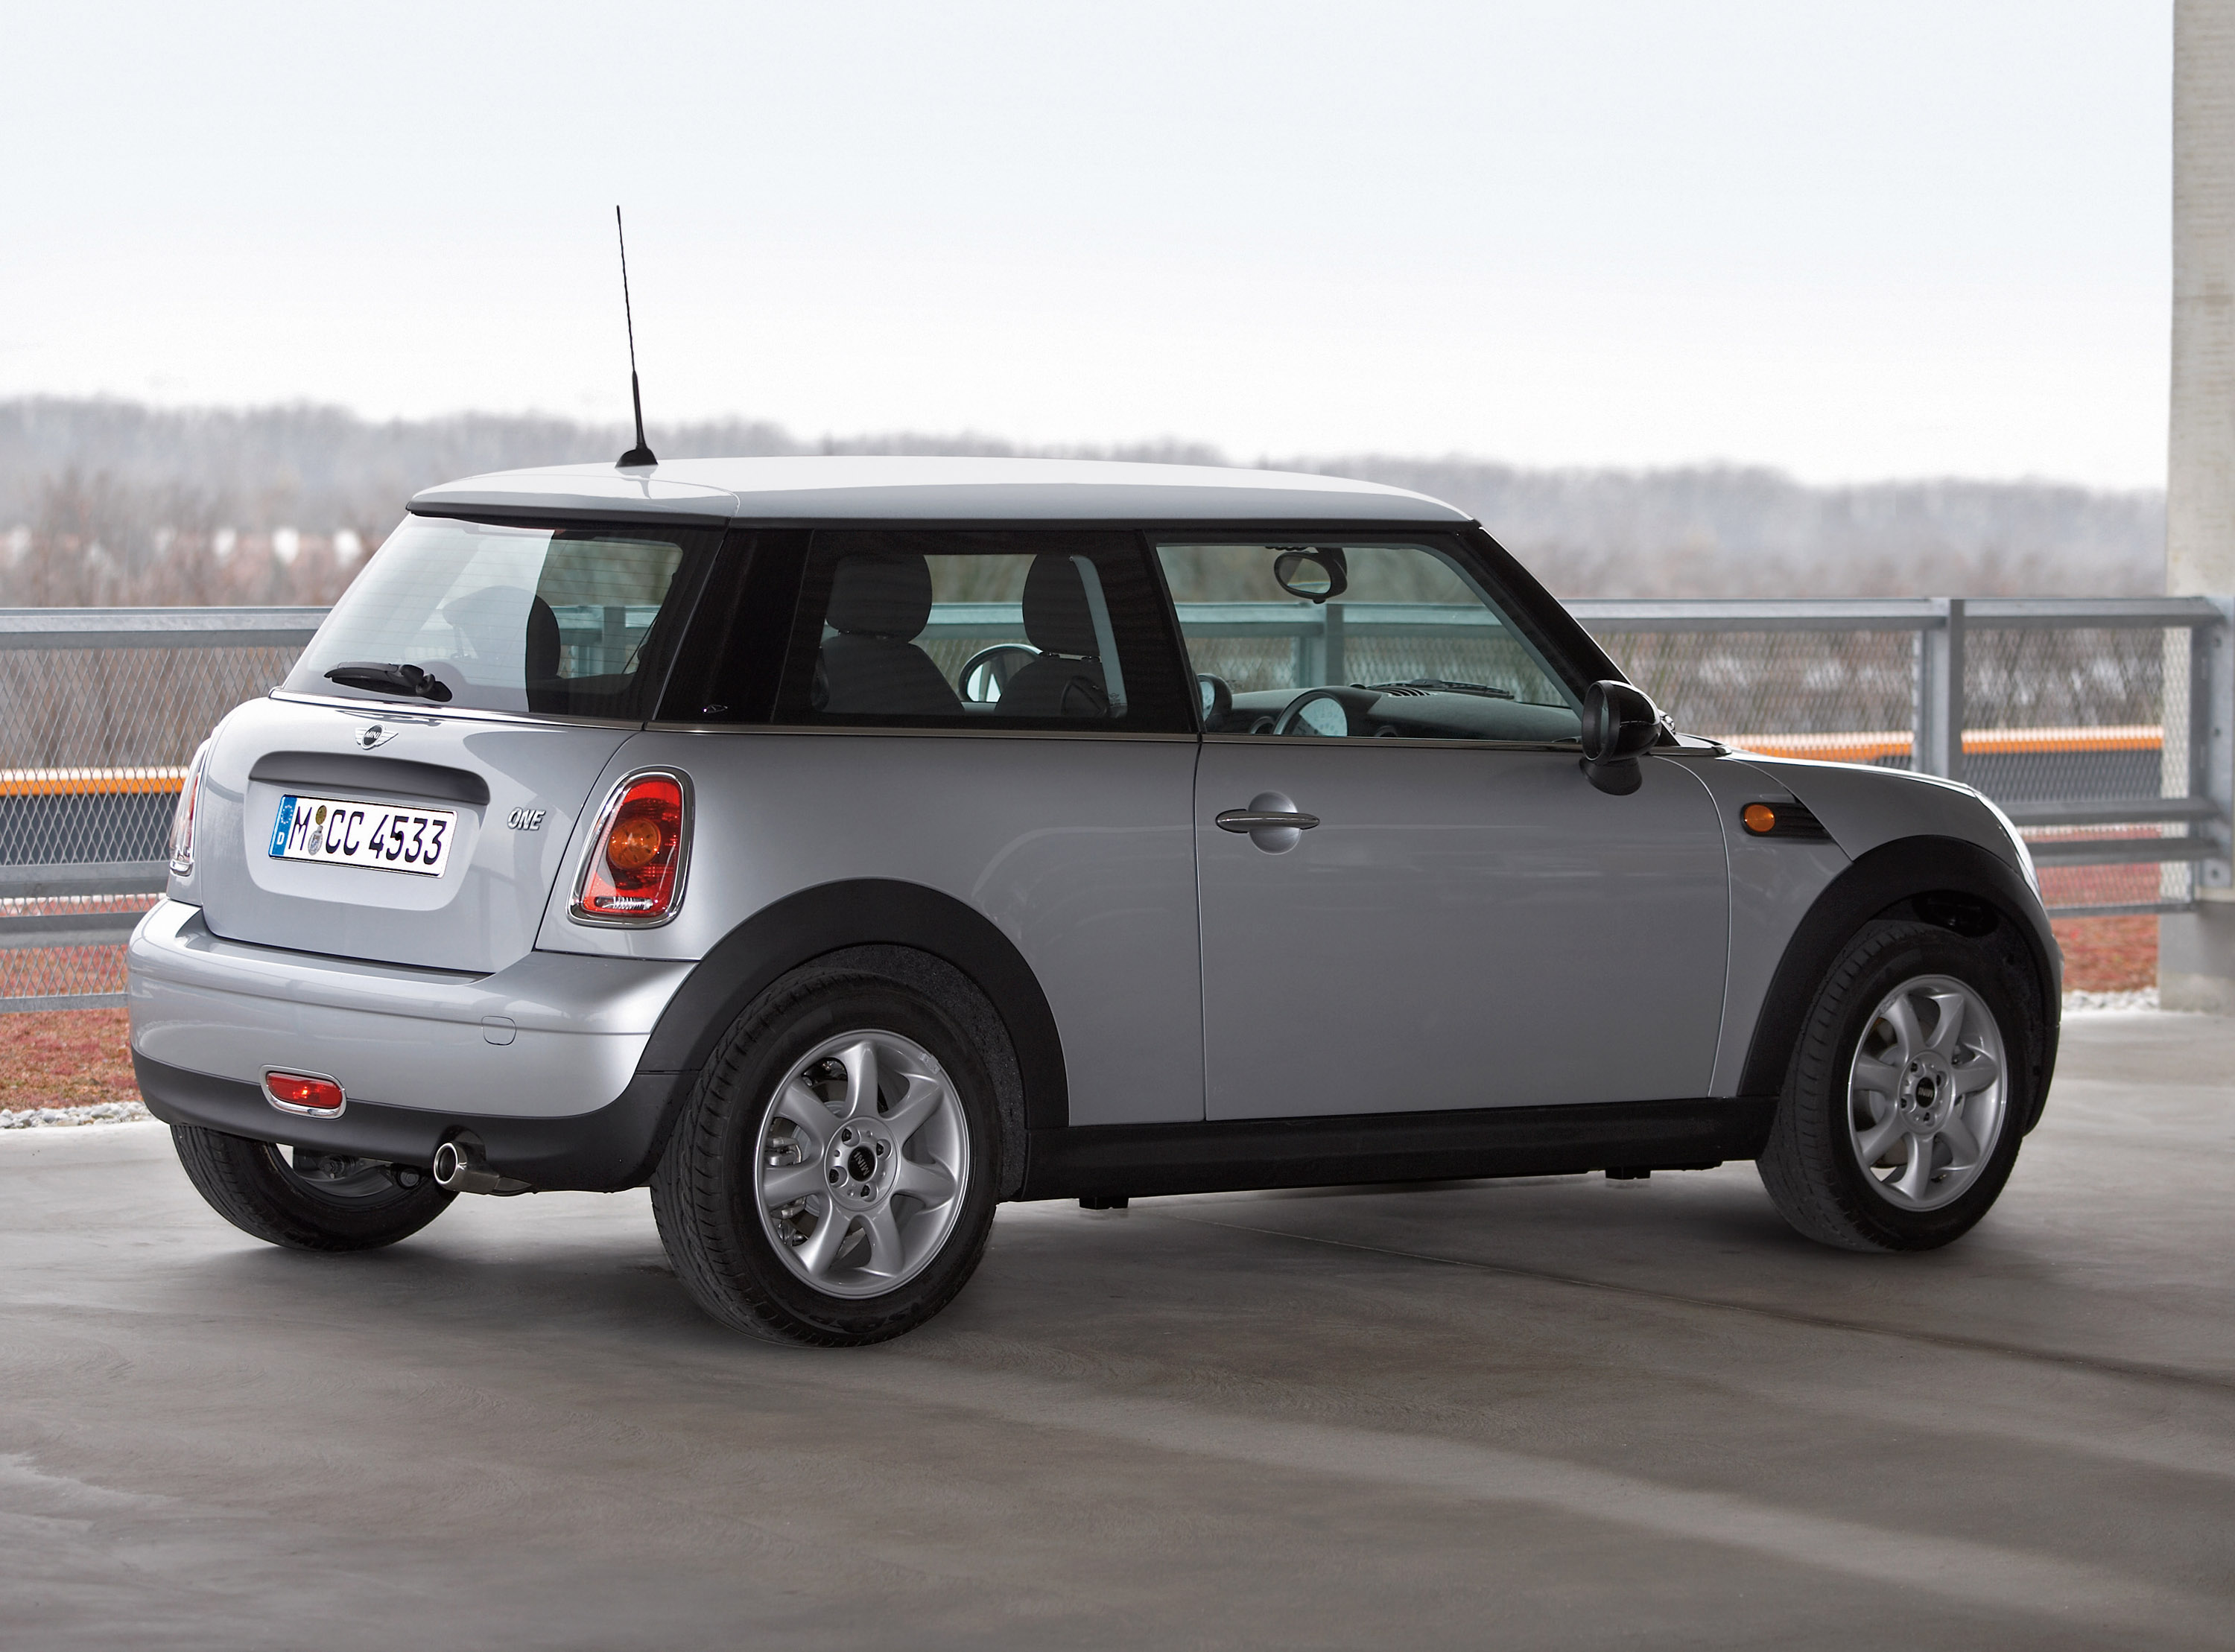 Premiere For The MINI One Clubman With 55 KW And